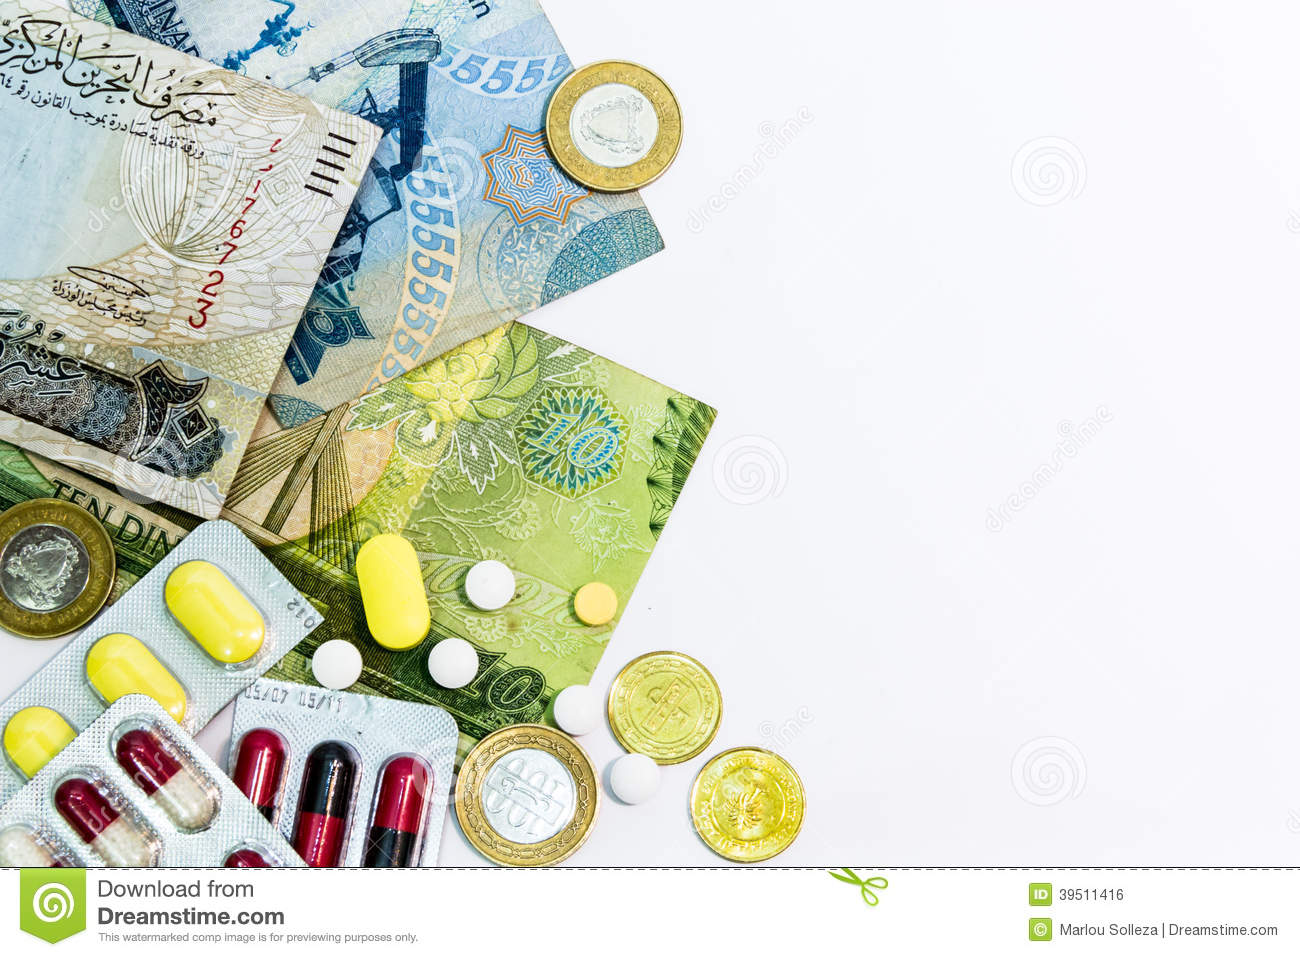 Bahrain Currency and medicine Close Up arranged on left